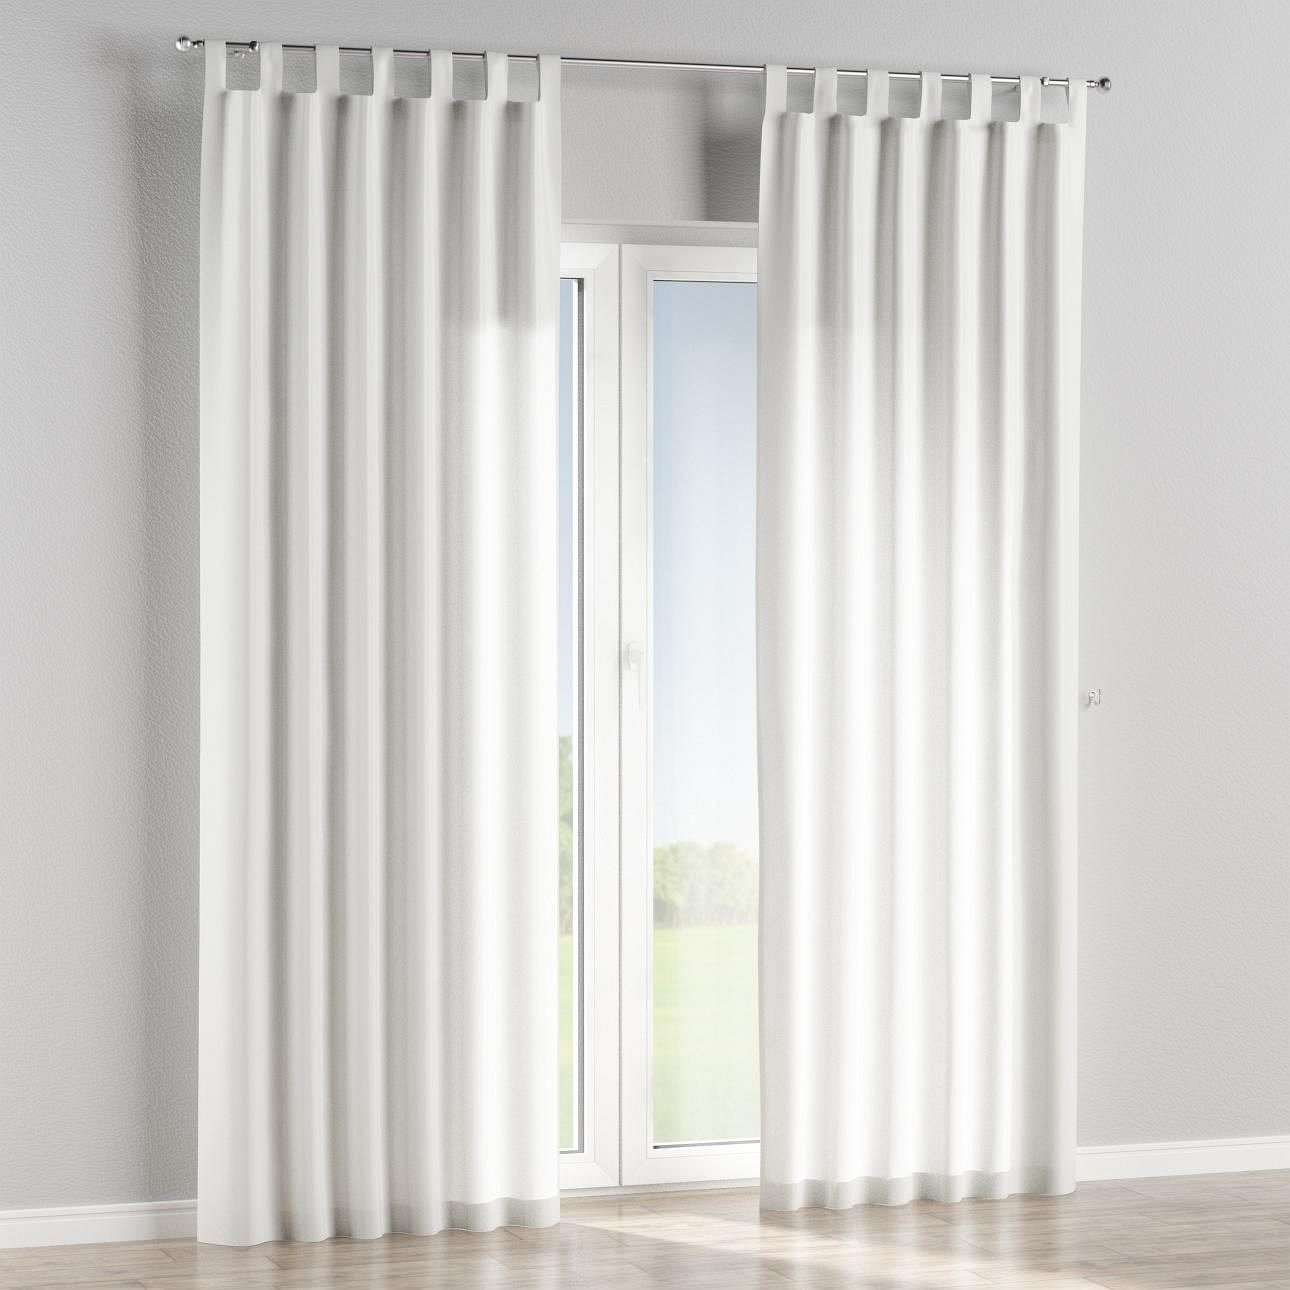 Tab top lined curtains in collection Bristol, fabric: 126-15